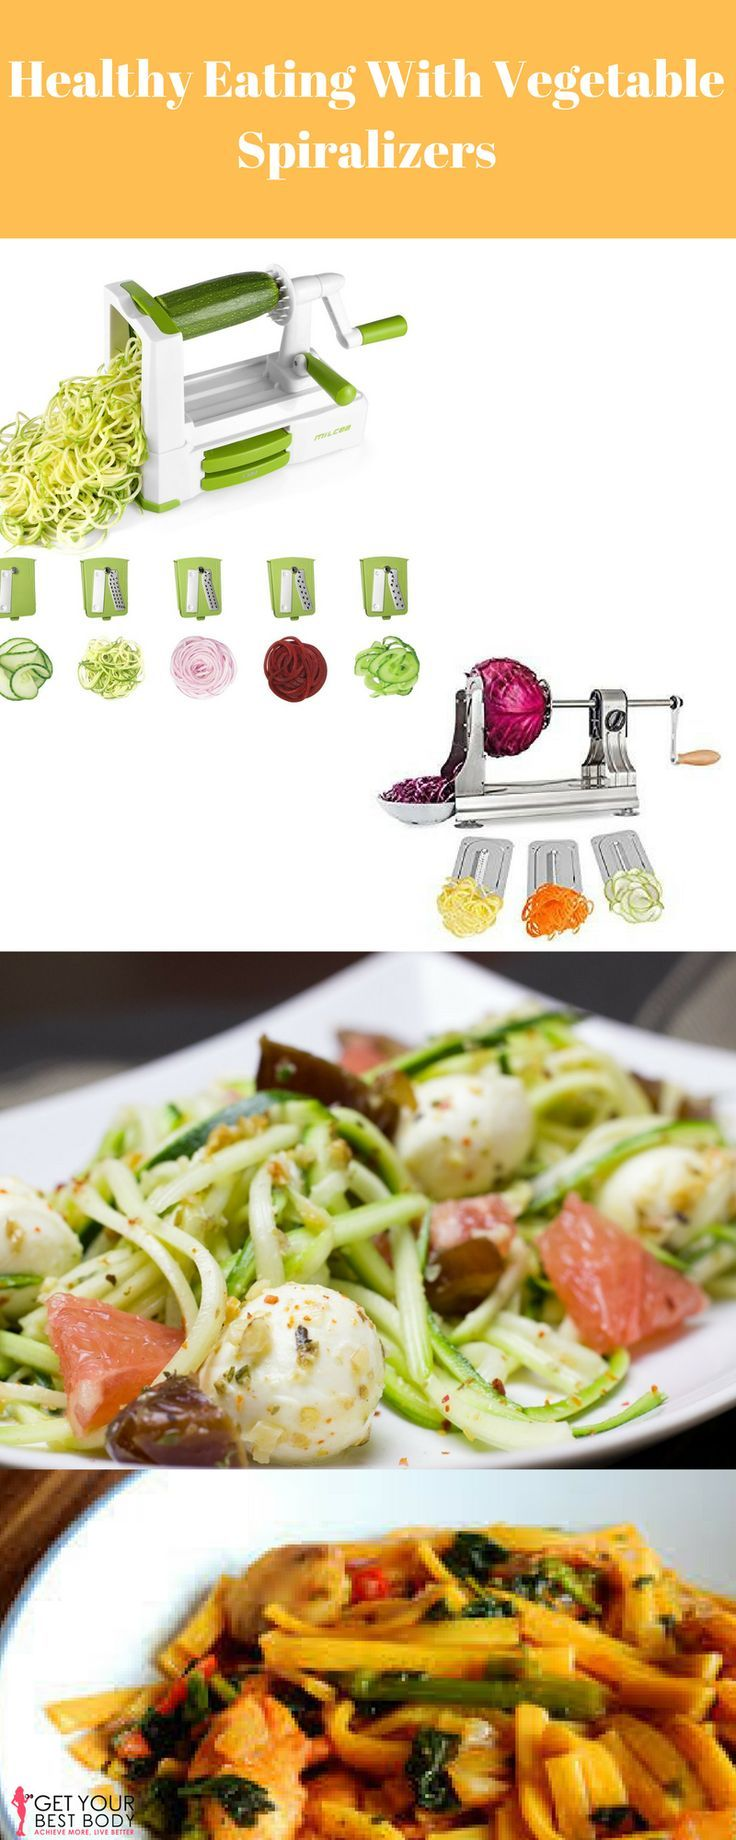 Lose weight with spiralizers for vegetables foods recipe blogs lose weight with spiralizers for vegetables foods recipe blogs and vegans forumfinder Gallery